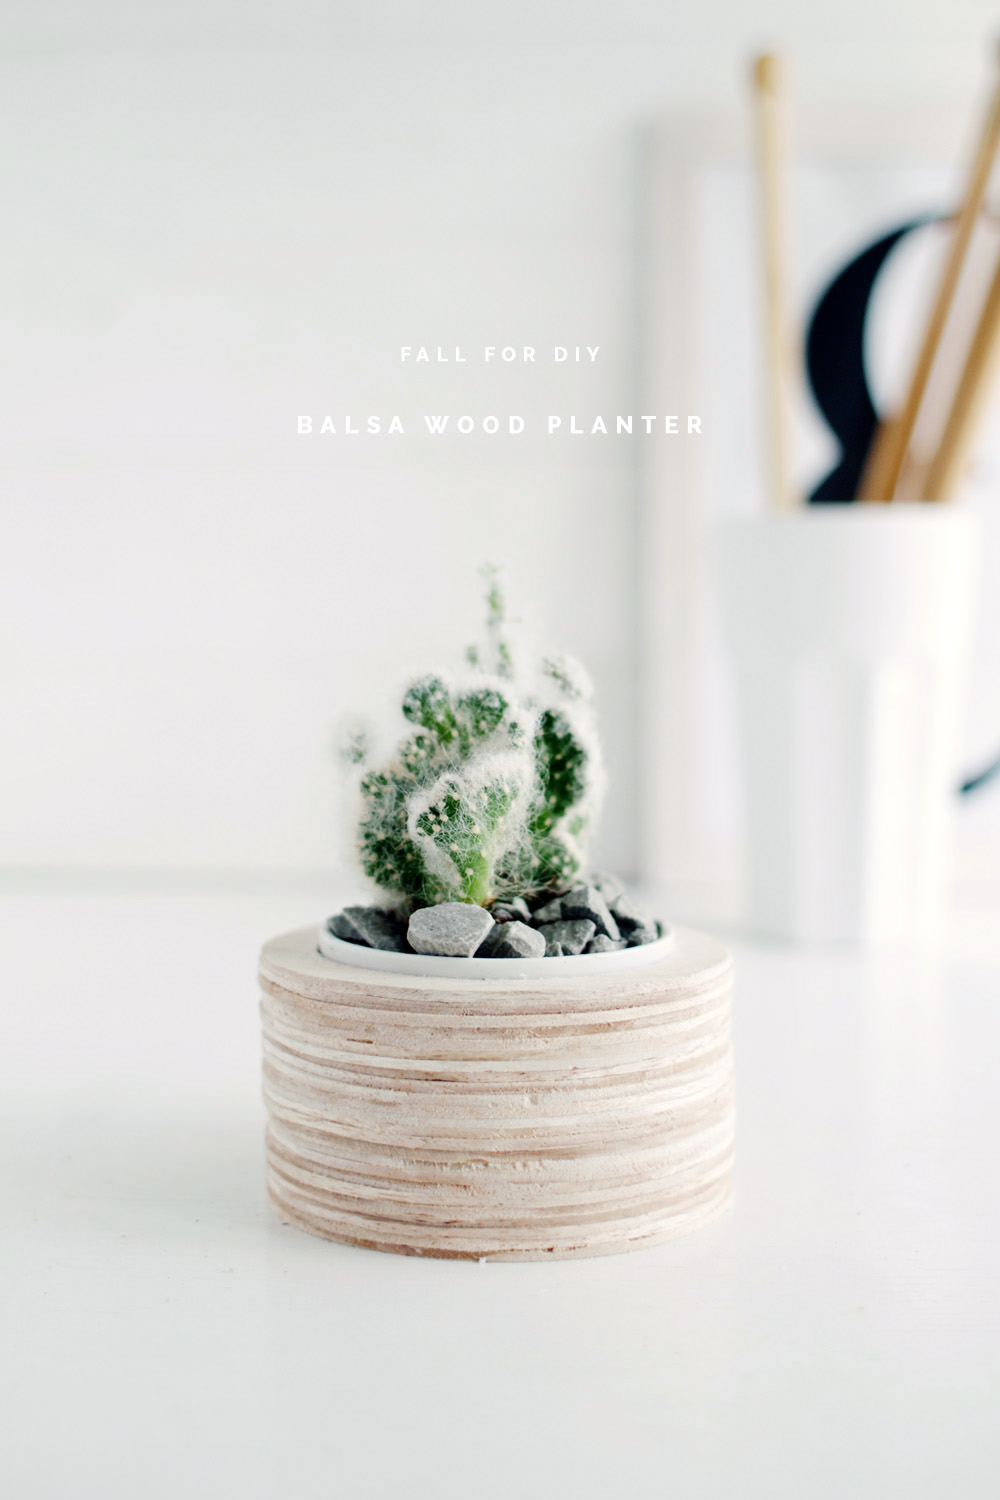 Fall For DIY Balsa Wood Planter